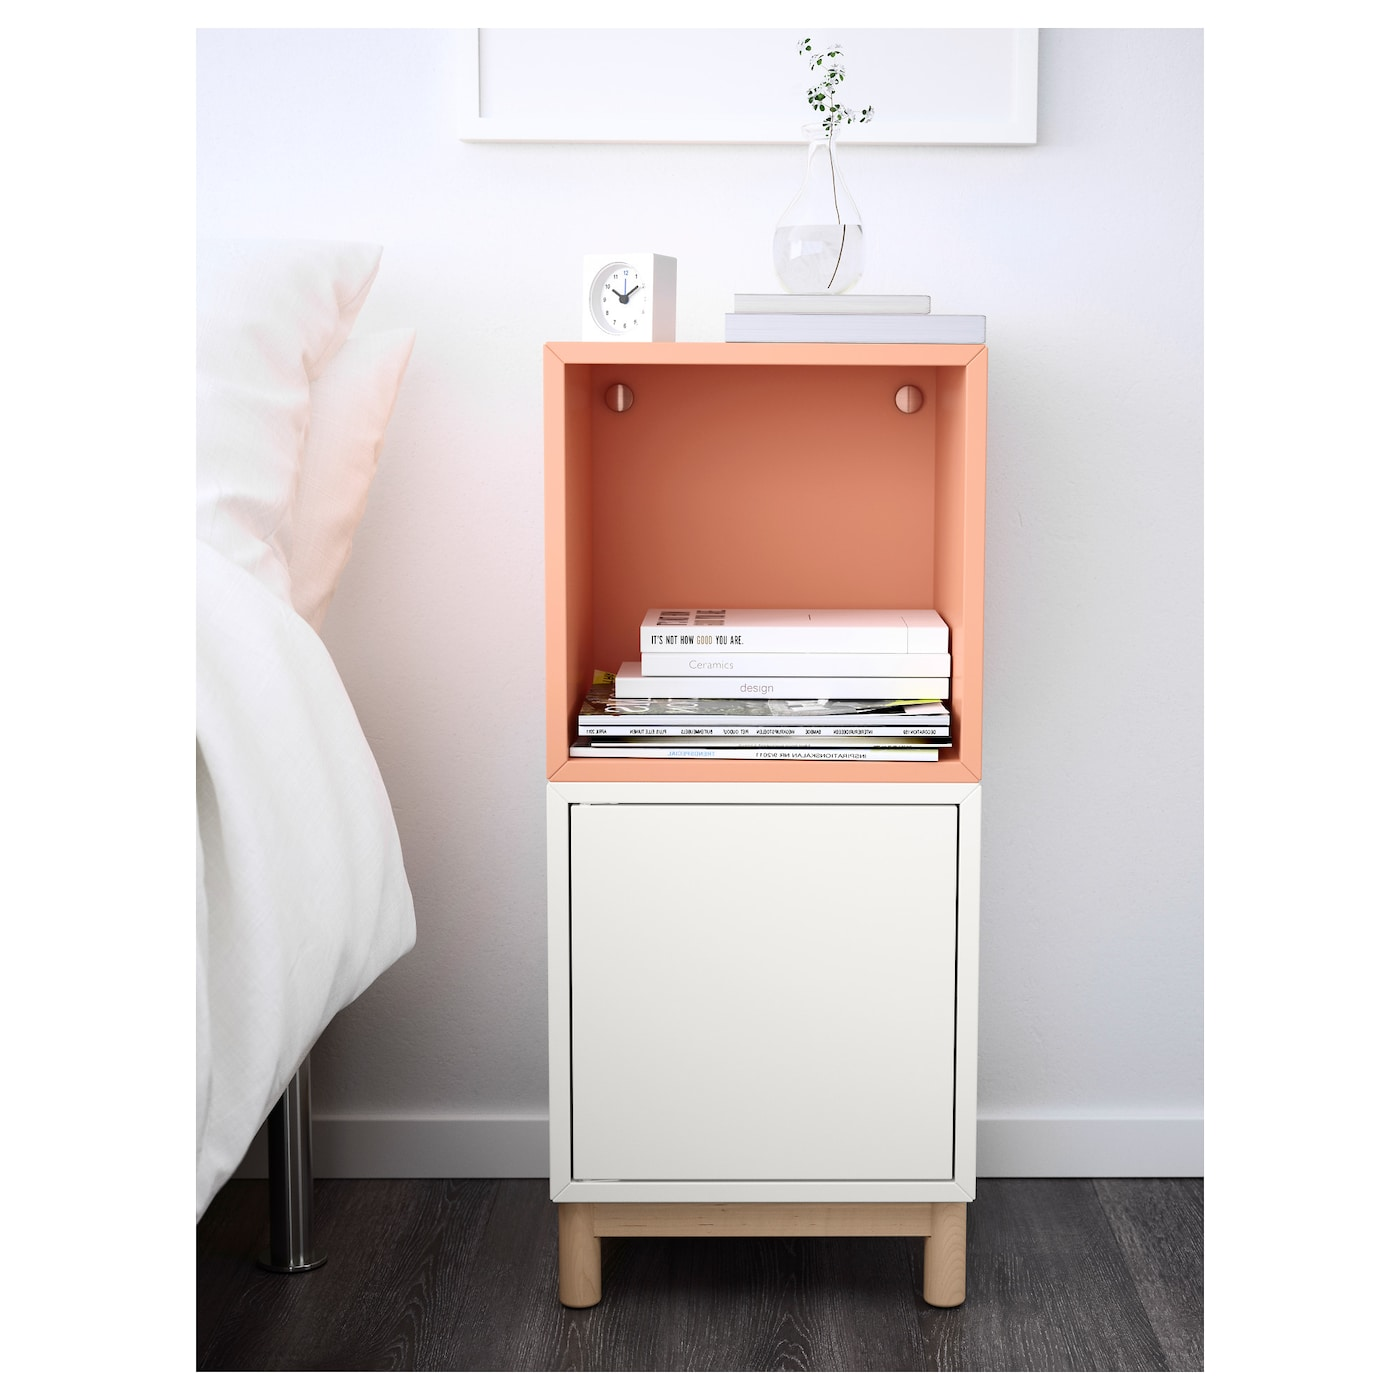 eket cabinet combination with legs white light orange 35 x 35 x 80 cm ikea. Black Bedroom Furniture Sets. Home Design Ideas